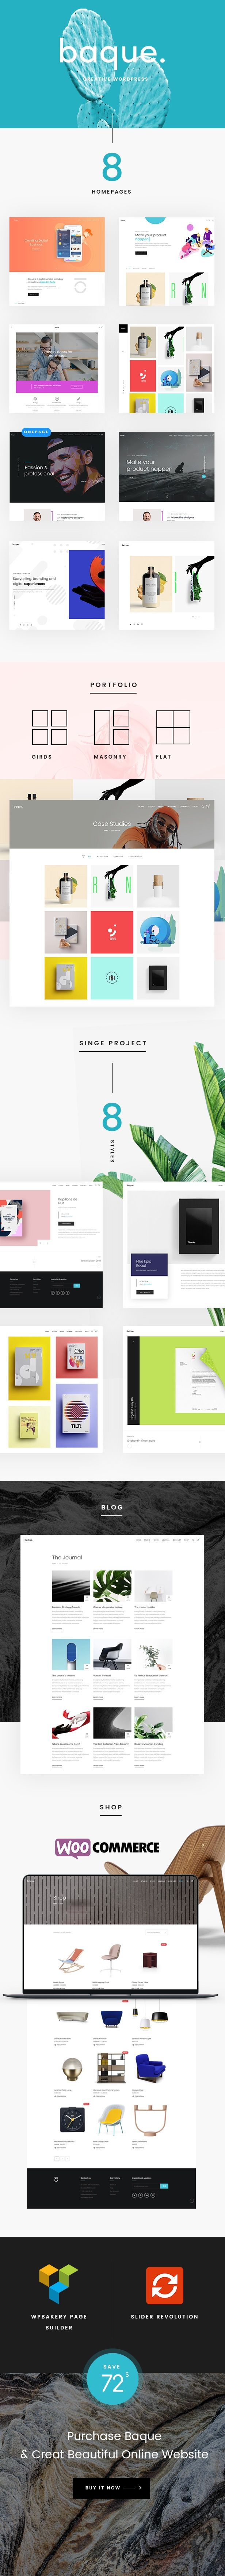 Baque - Multipurpose Onepage Creative WP Theme - 1